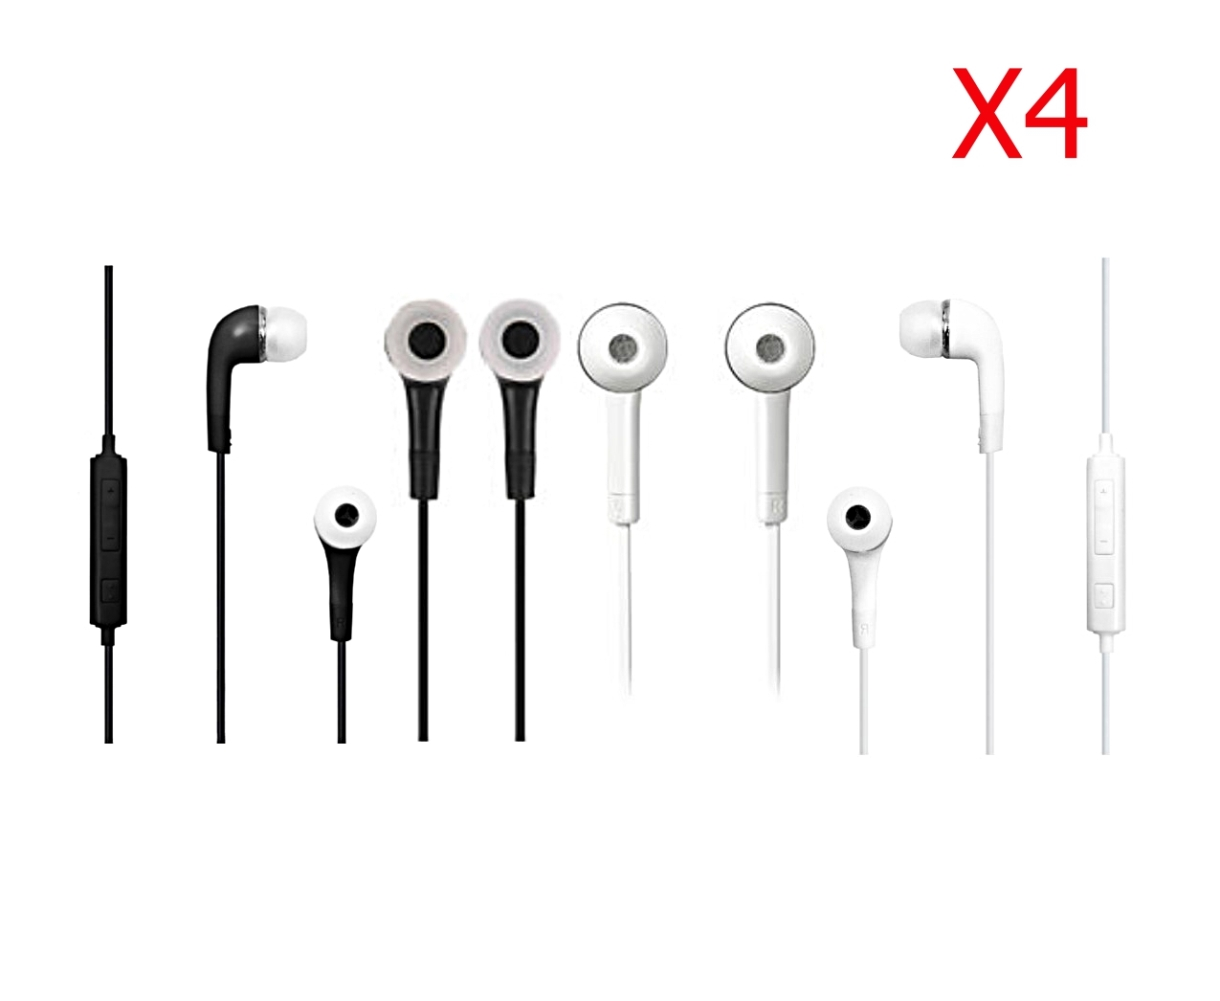 Poznejte Radu Samsung Galaxy Pritomnost A Budoucnost 3 Dil 17818 furthermore 374639533 moreover 400965603249 in addition Baseus S16 Wireless Bluetooth Earphone For Smart Phone in addition 2441 Samsung Galaxy S4 Fremde Headsets Kopfh Rer Verursachen Teilweise Probleme. on samsung galaxy s5 headset